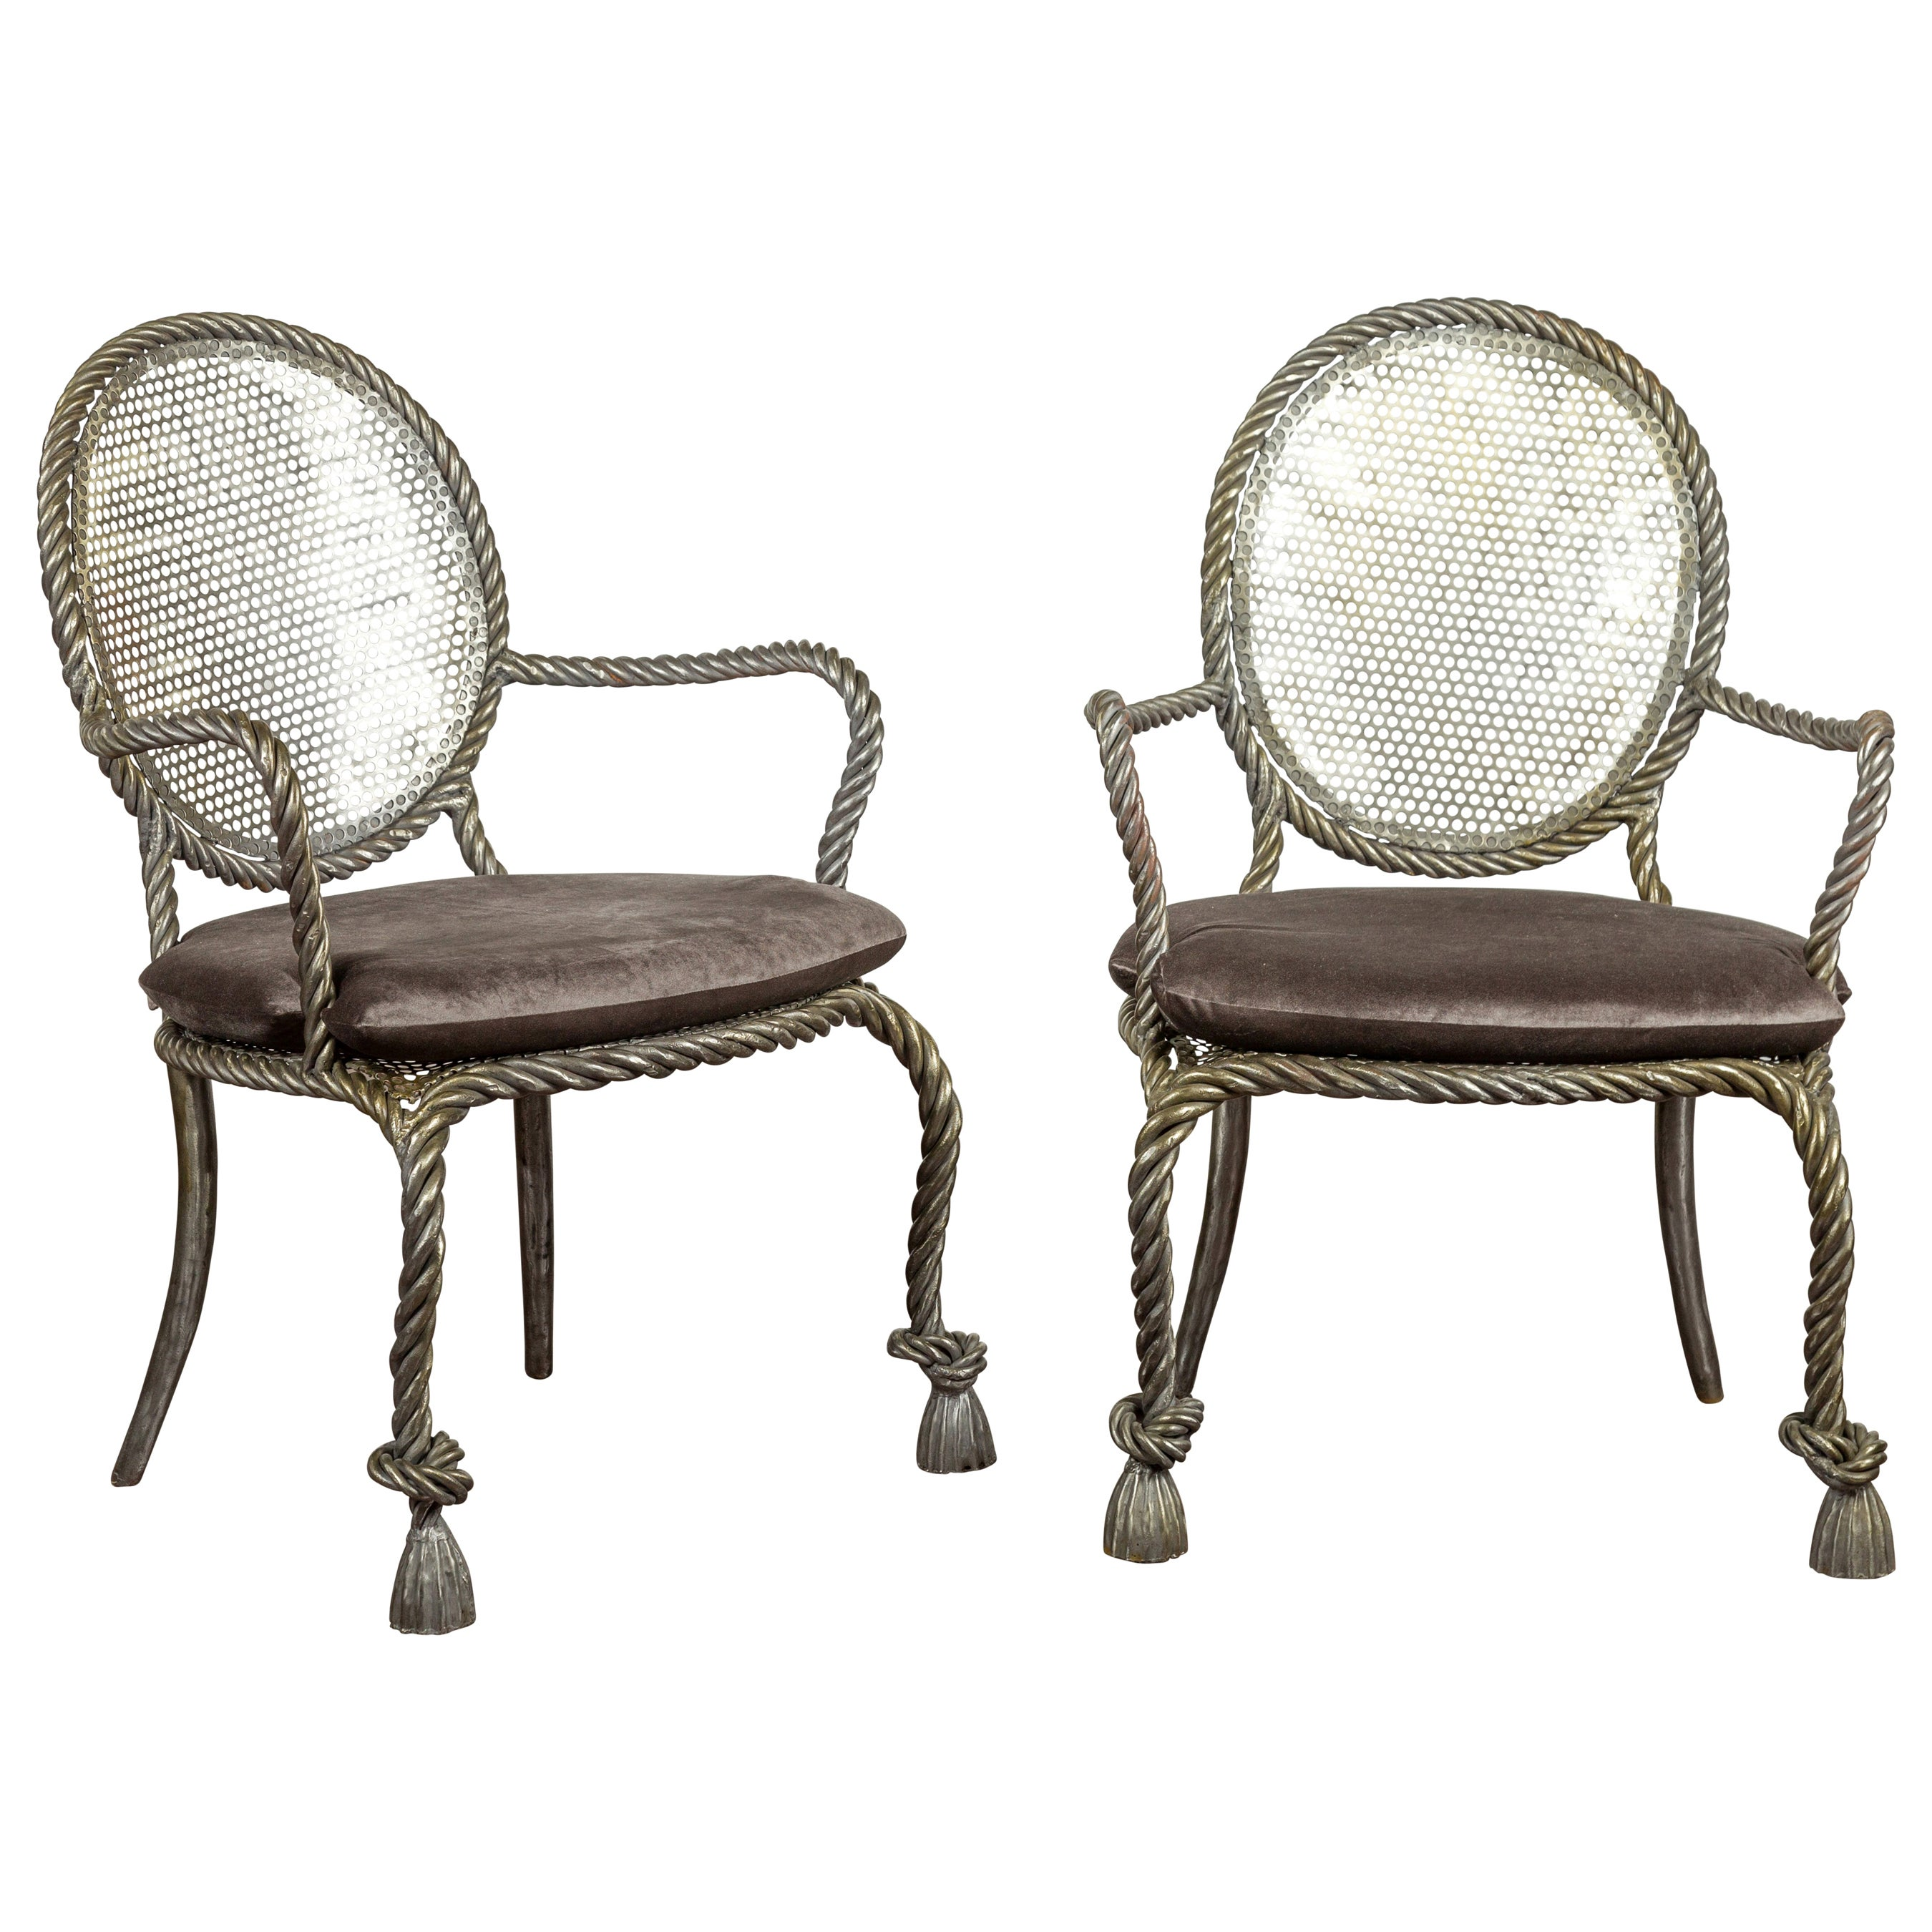 Pair of Italian Midcentury Polished Steel Rope Armchairs with Velvet Cushion